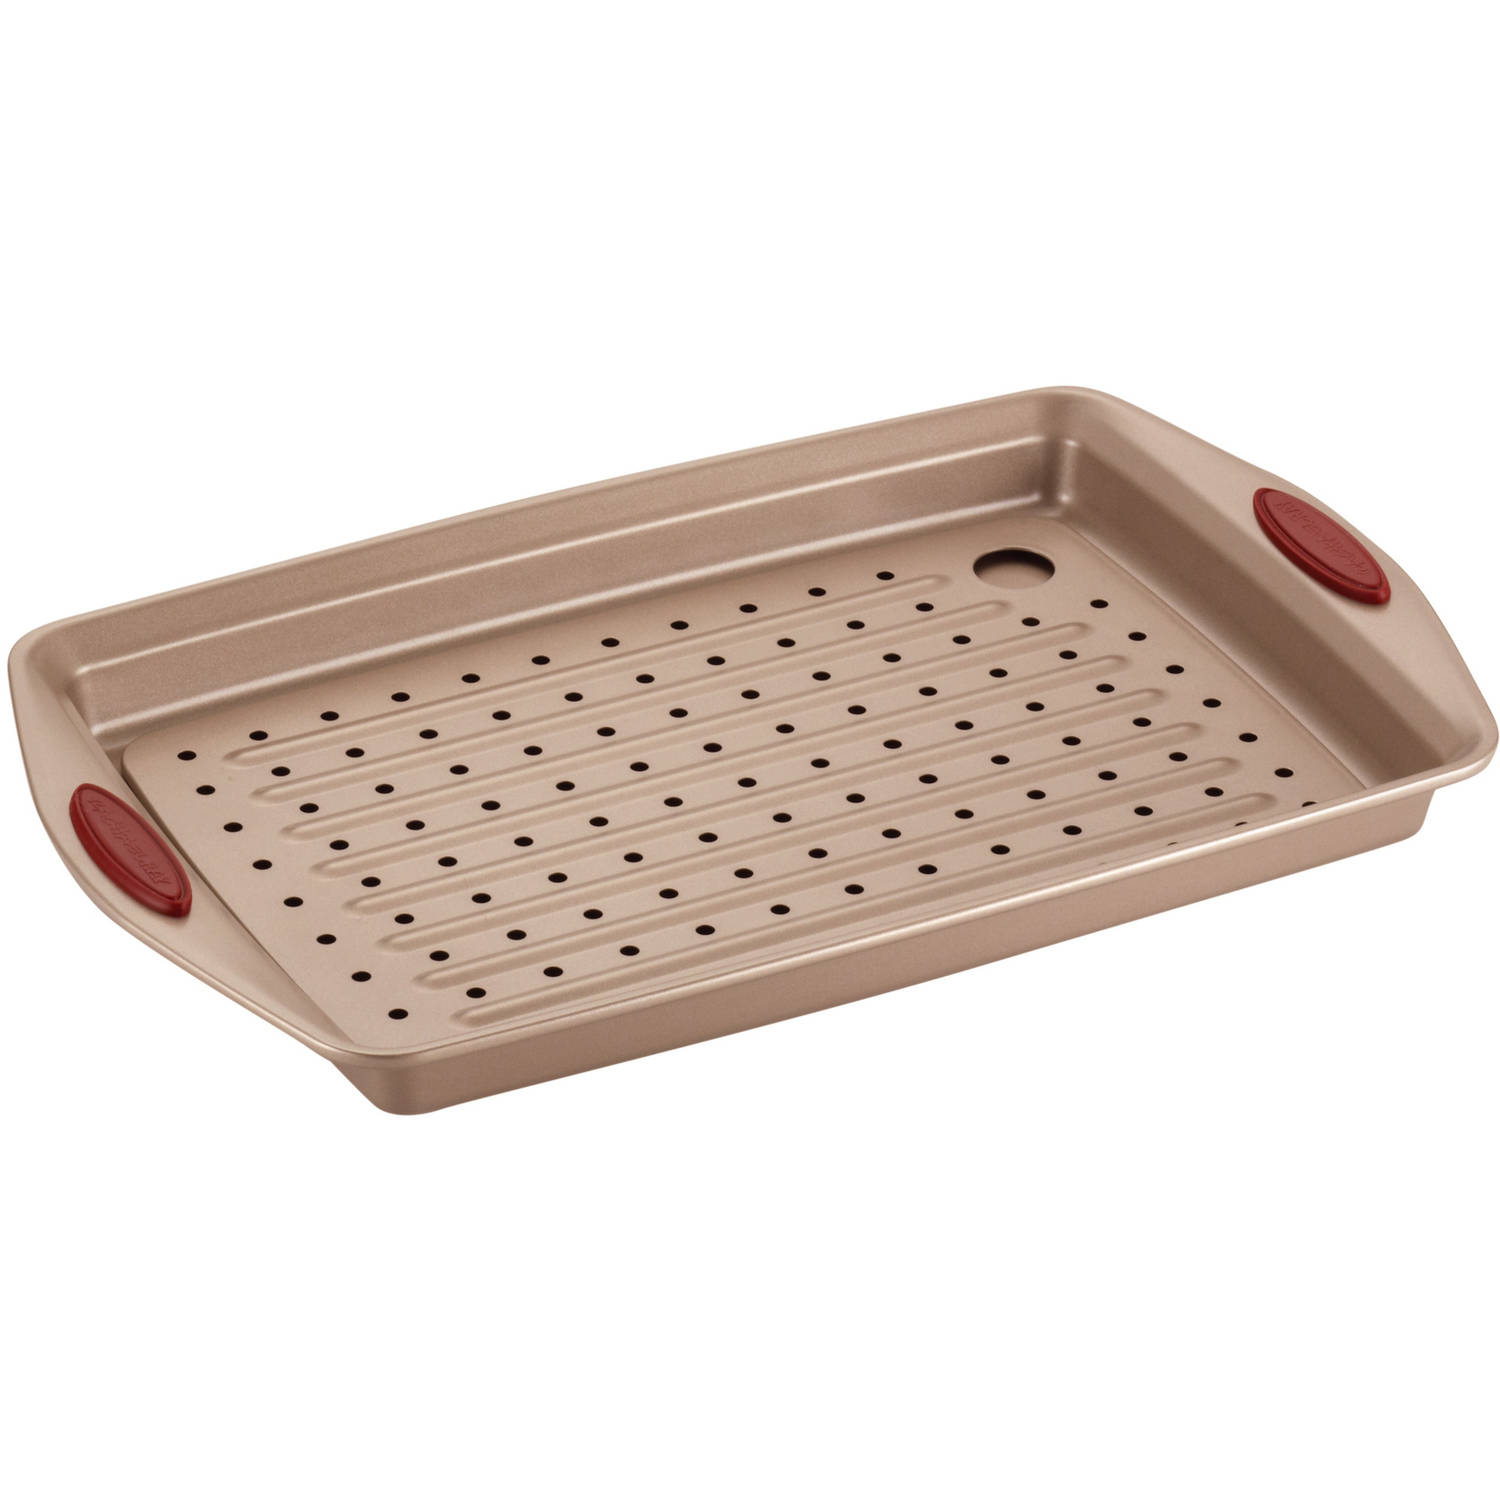 Rachael Ray Cucina Nonstick Bakeware 2-Piece Crisper Pan Set, Latte Brown with Cranberry Red Handle Grips